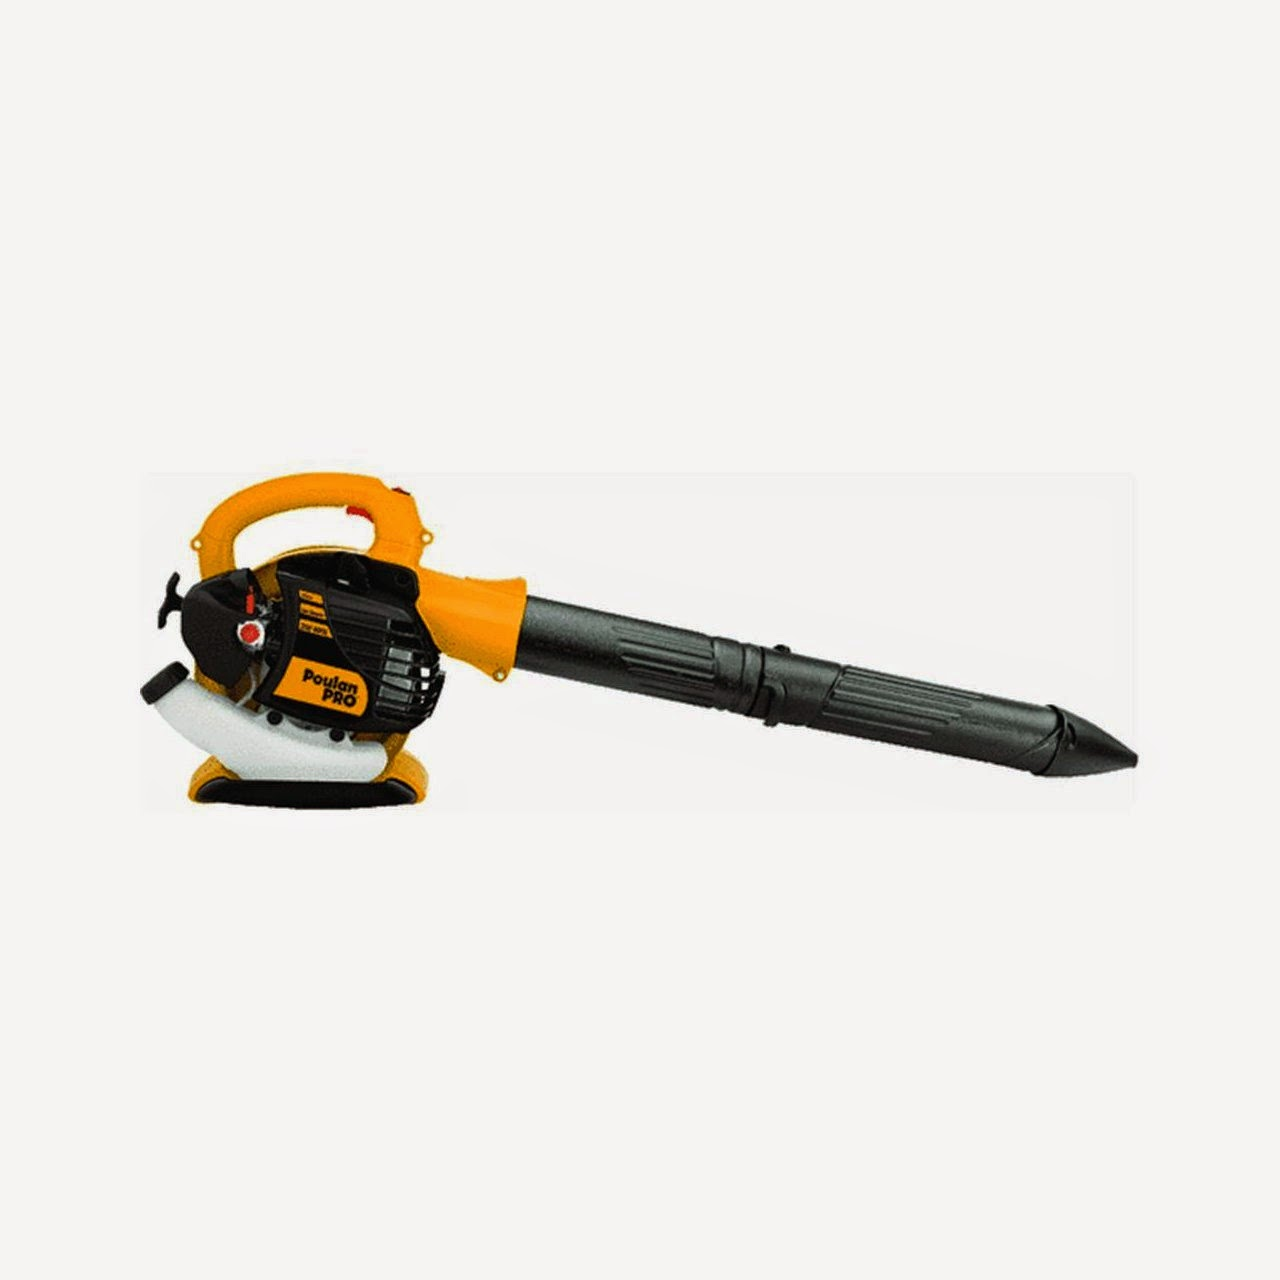 25cc 2 Cycle Hand Held Leaf Blower 2016 2016 Car Release Date #C37408